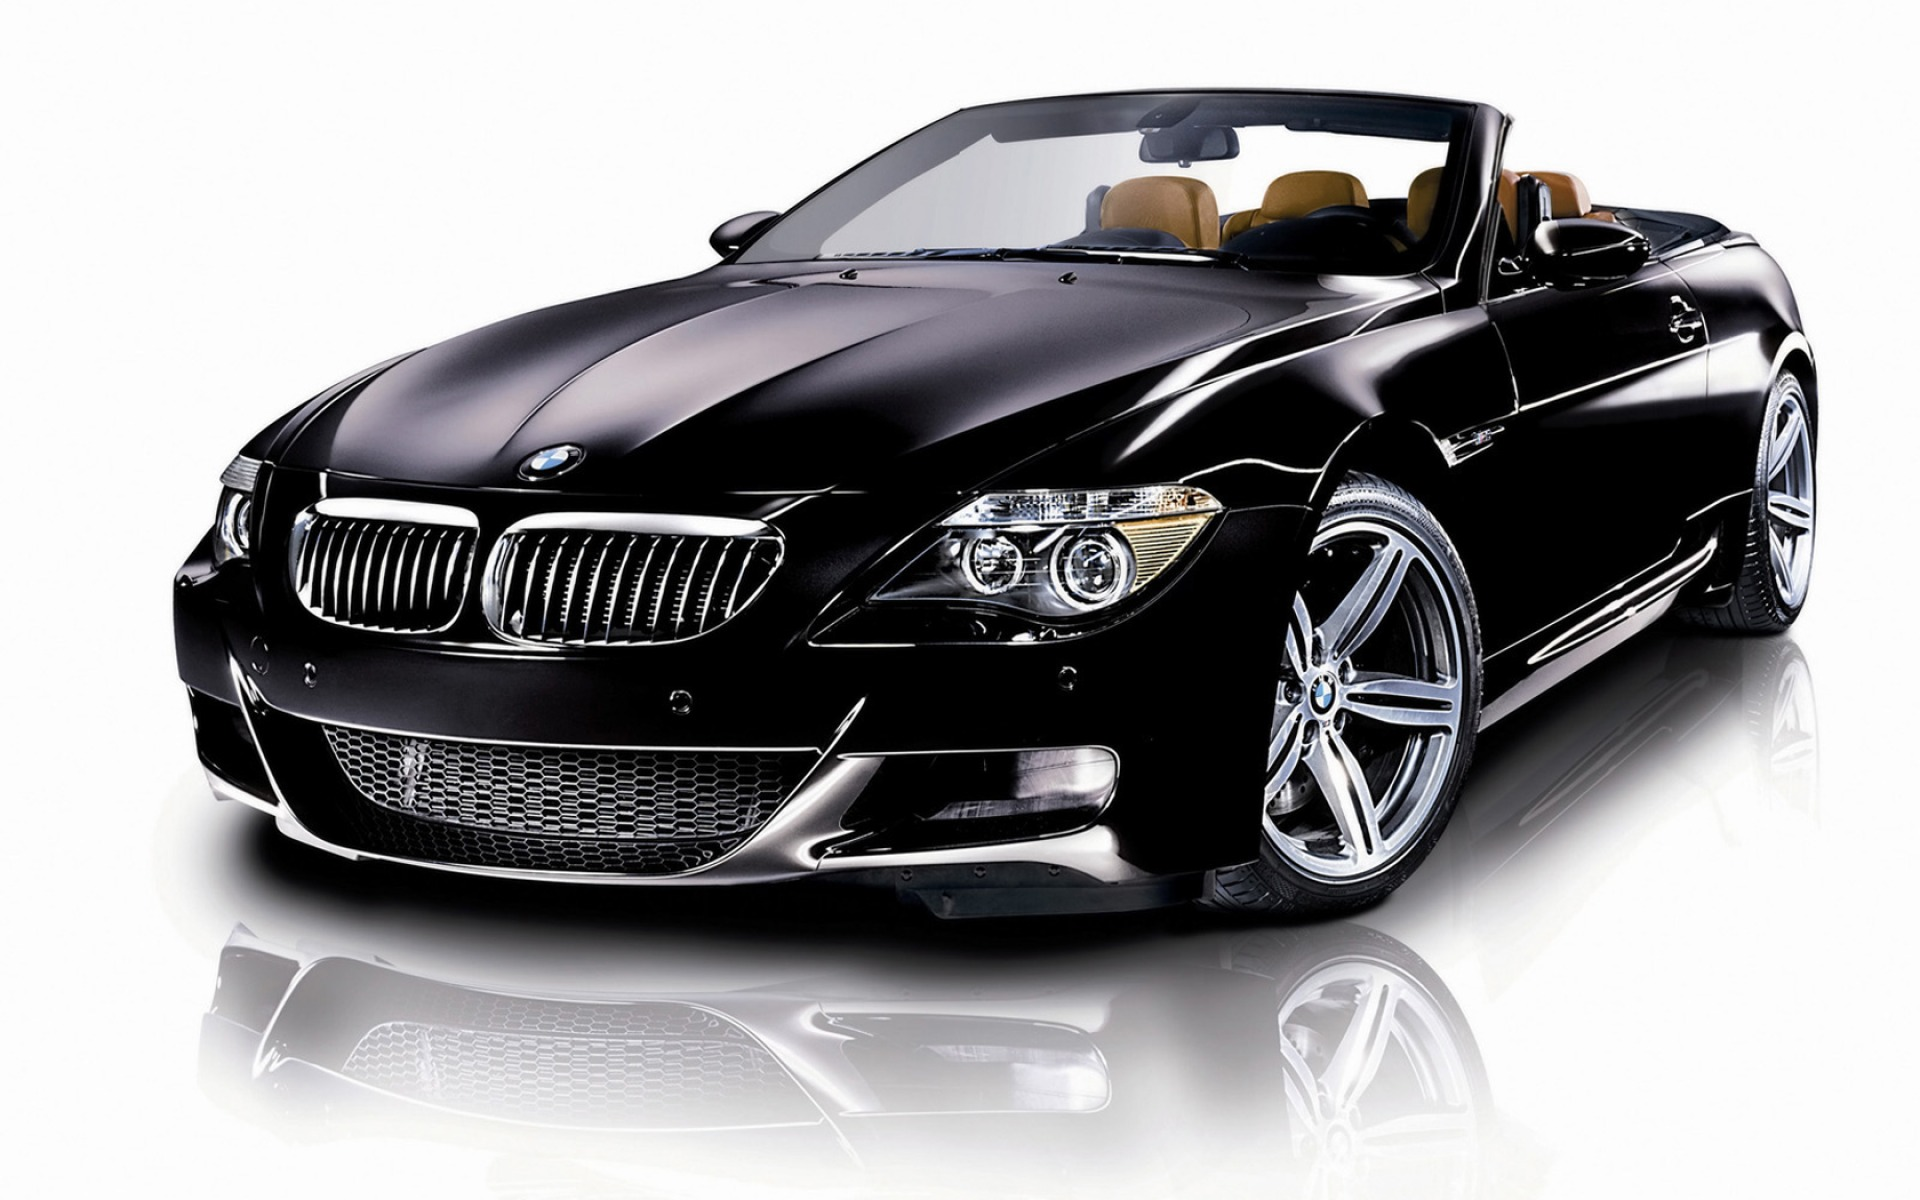 Ultrablogus  Outstanding Bmw Car Wallpaper Wallpapers For Free Download About   With Goodlooking Bmw M Convertible Wallpaper Bmw Cars With Nice Interior Car Detailing Diy Also  Prius Interior In Addition Sentra Interior And Passat  Interior As Well As  Chrysler Sebring Interior Additionally Infiniti Qx Interior From Allfreedownloadcom With Ultrablogus  Goodlooking Bmw Car Wallpaper Wallpapers For Free Download About   With Nice Bmw M Convertible Wallpaper Bmw Cars And Outstanding Interior Car Detailing Diy Also  Prius Interior In Addition Sentra Interior From Allfreedownloadcom